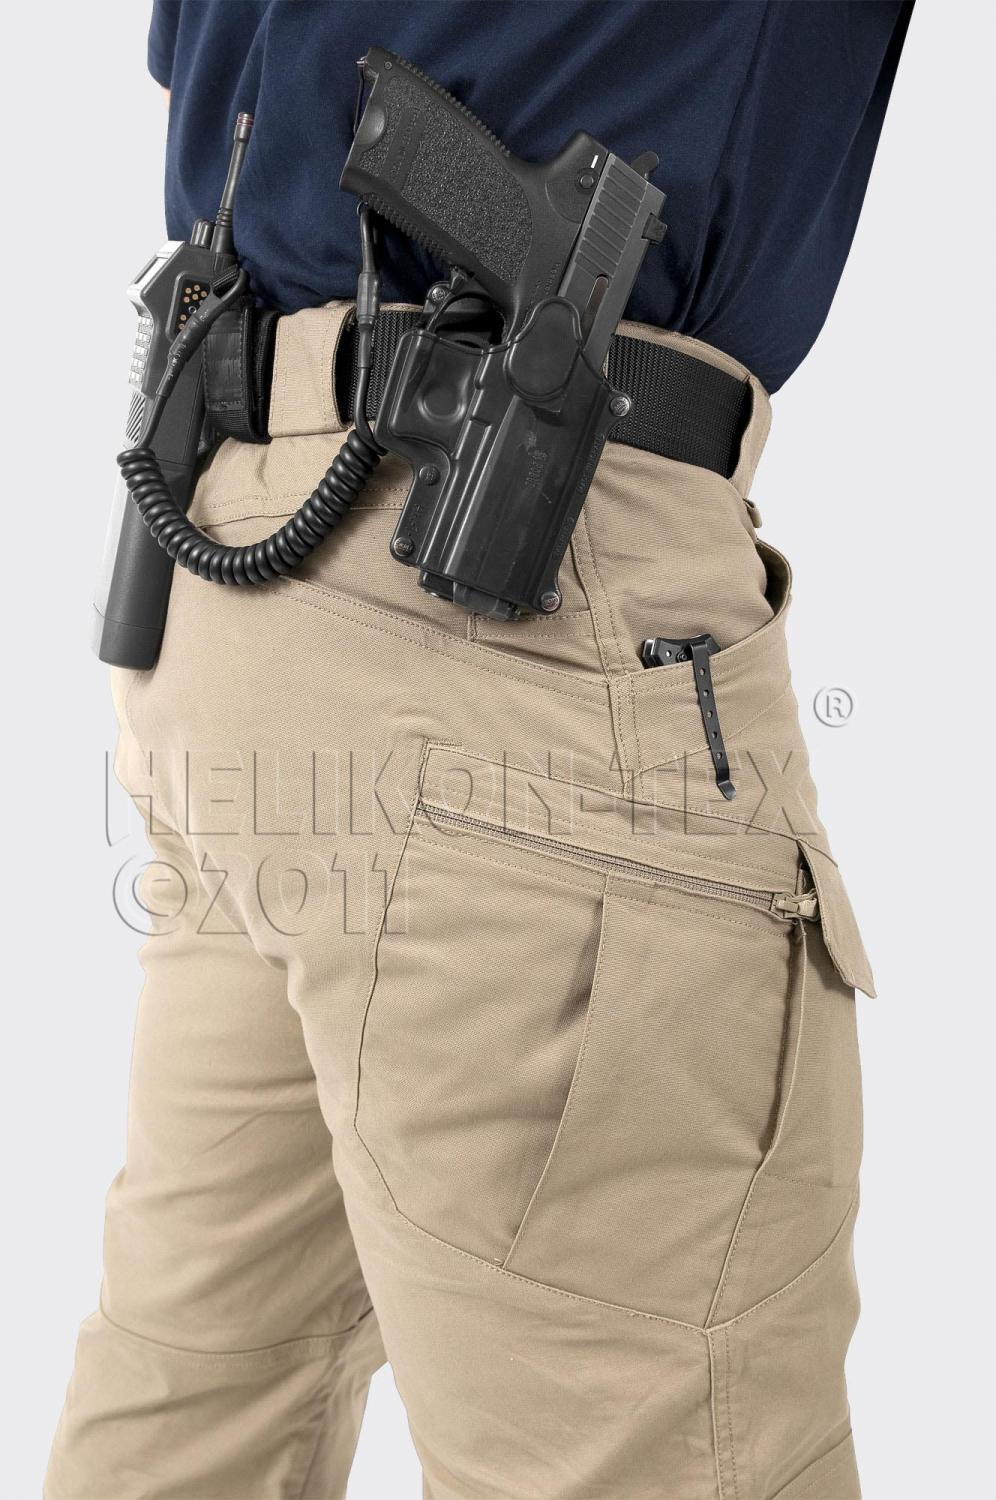 HELIKON TEX UTP Grün URBAN TACTICAL PANTS Hose Taiga Grün UTP SL Small Long bf6546